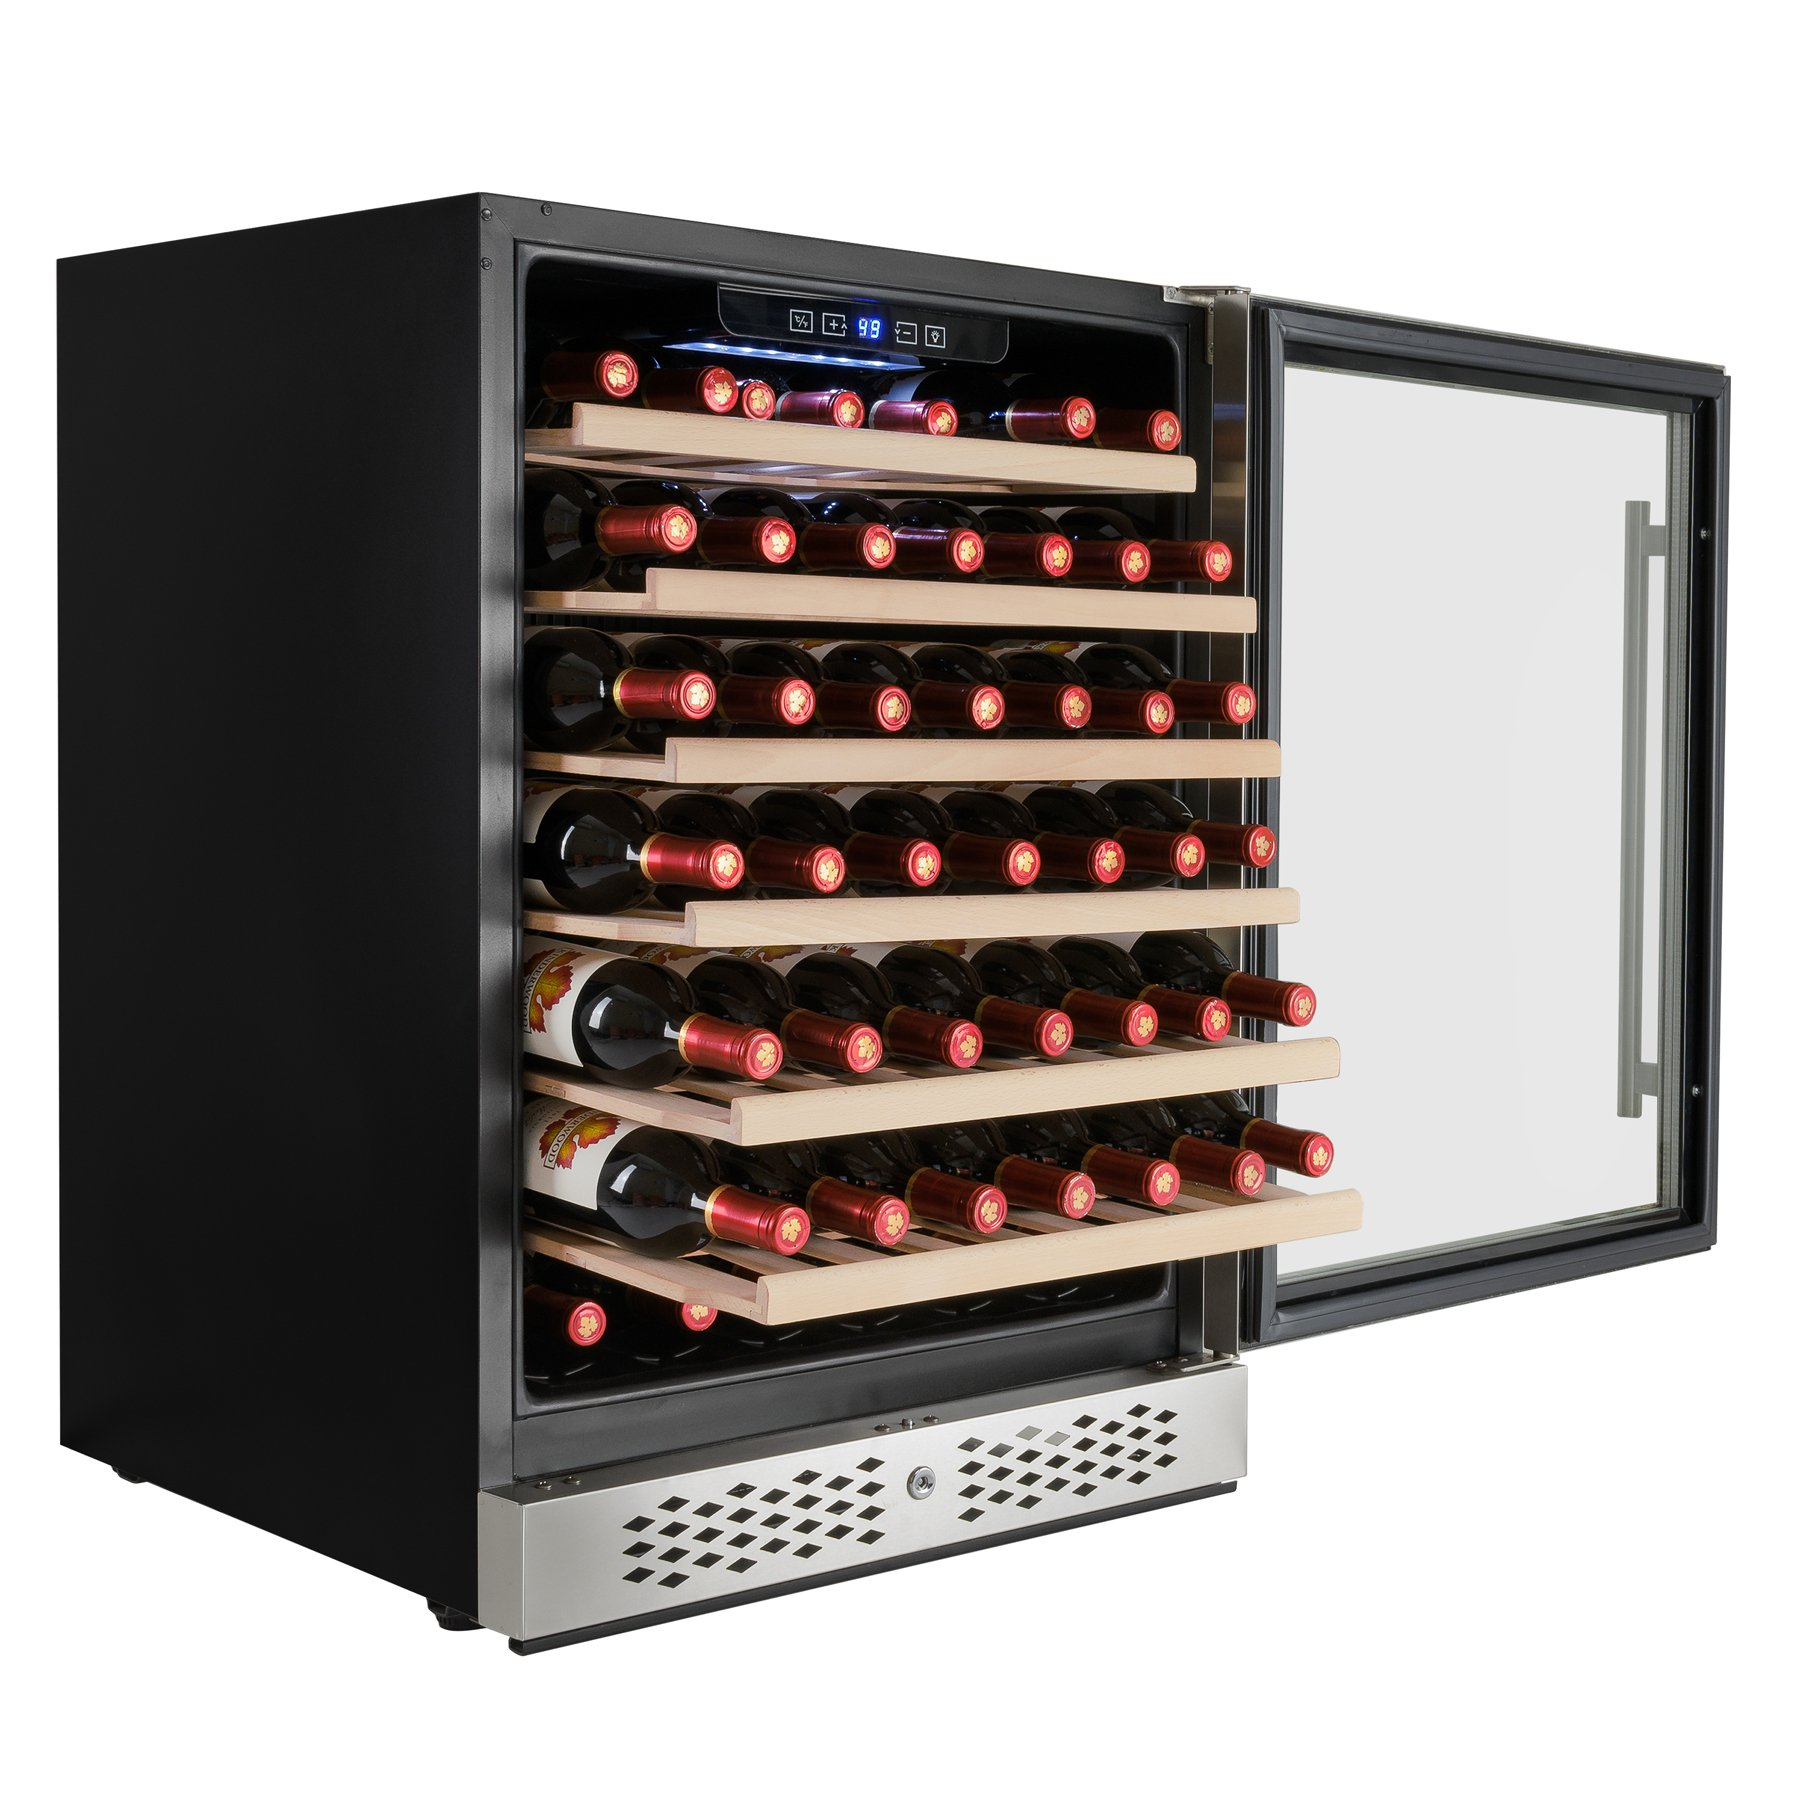 AKDY 54 Bottles Single Zone Touch Control LED Display Built-in Compressor Freestanding Electric Wine Cooler Cellar